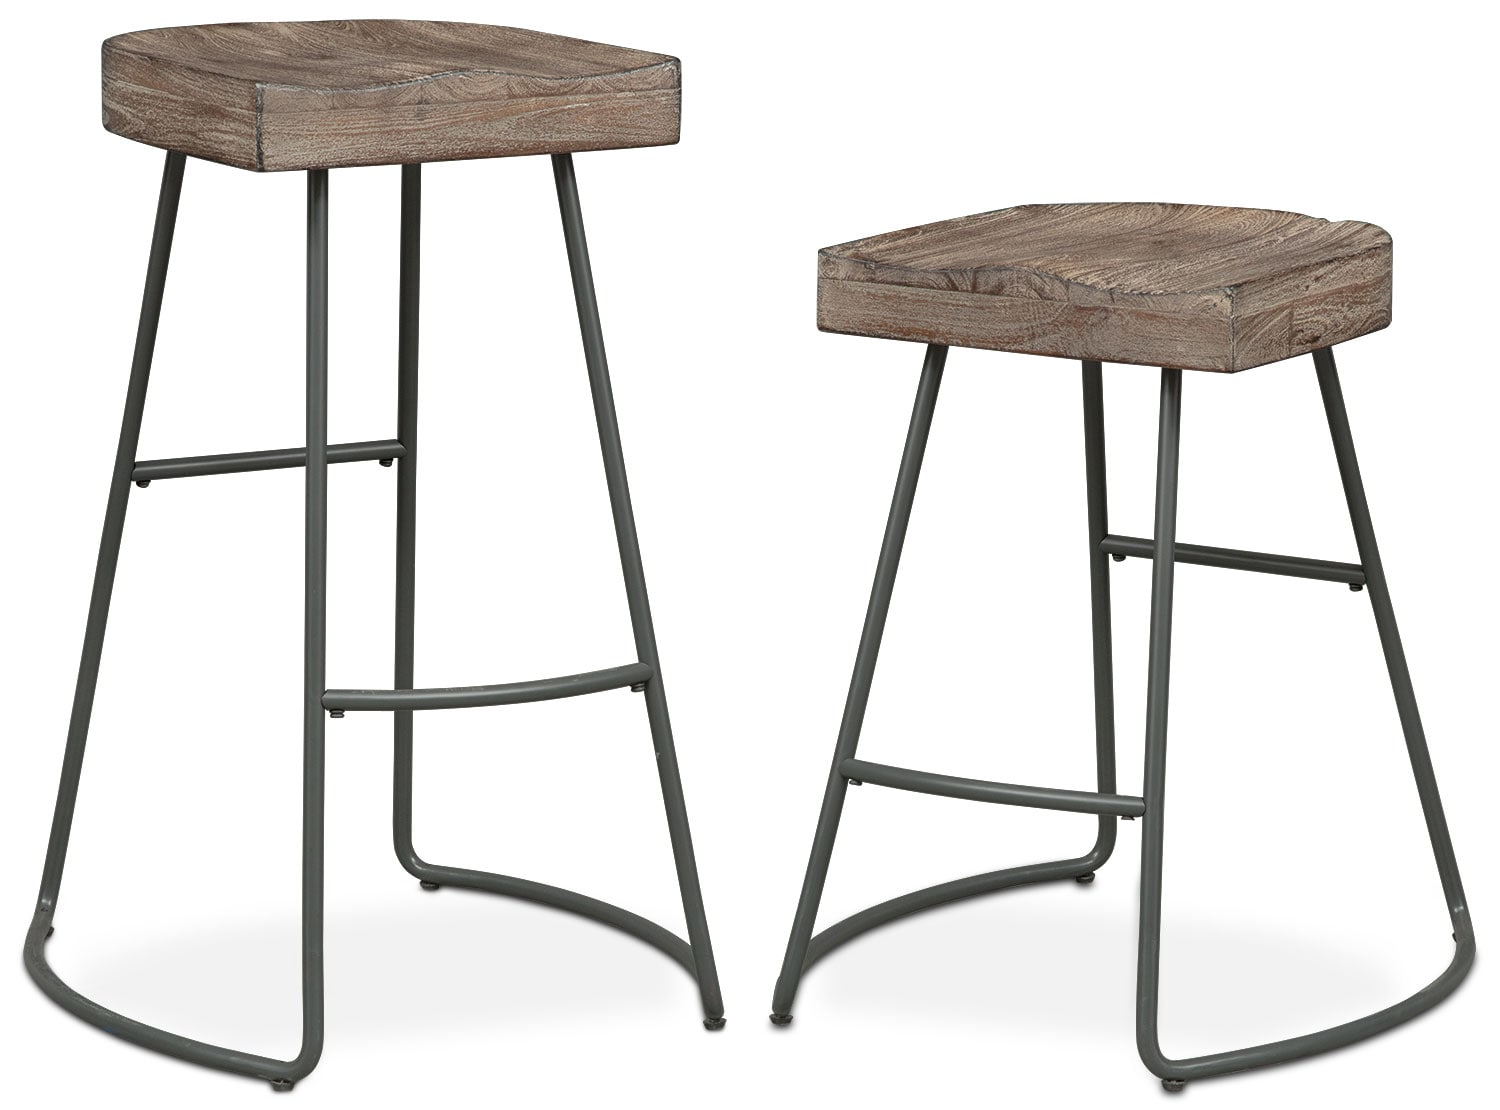 The Foundry Collection - Distressed Wood